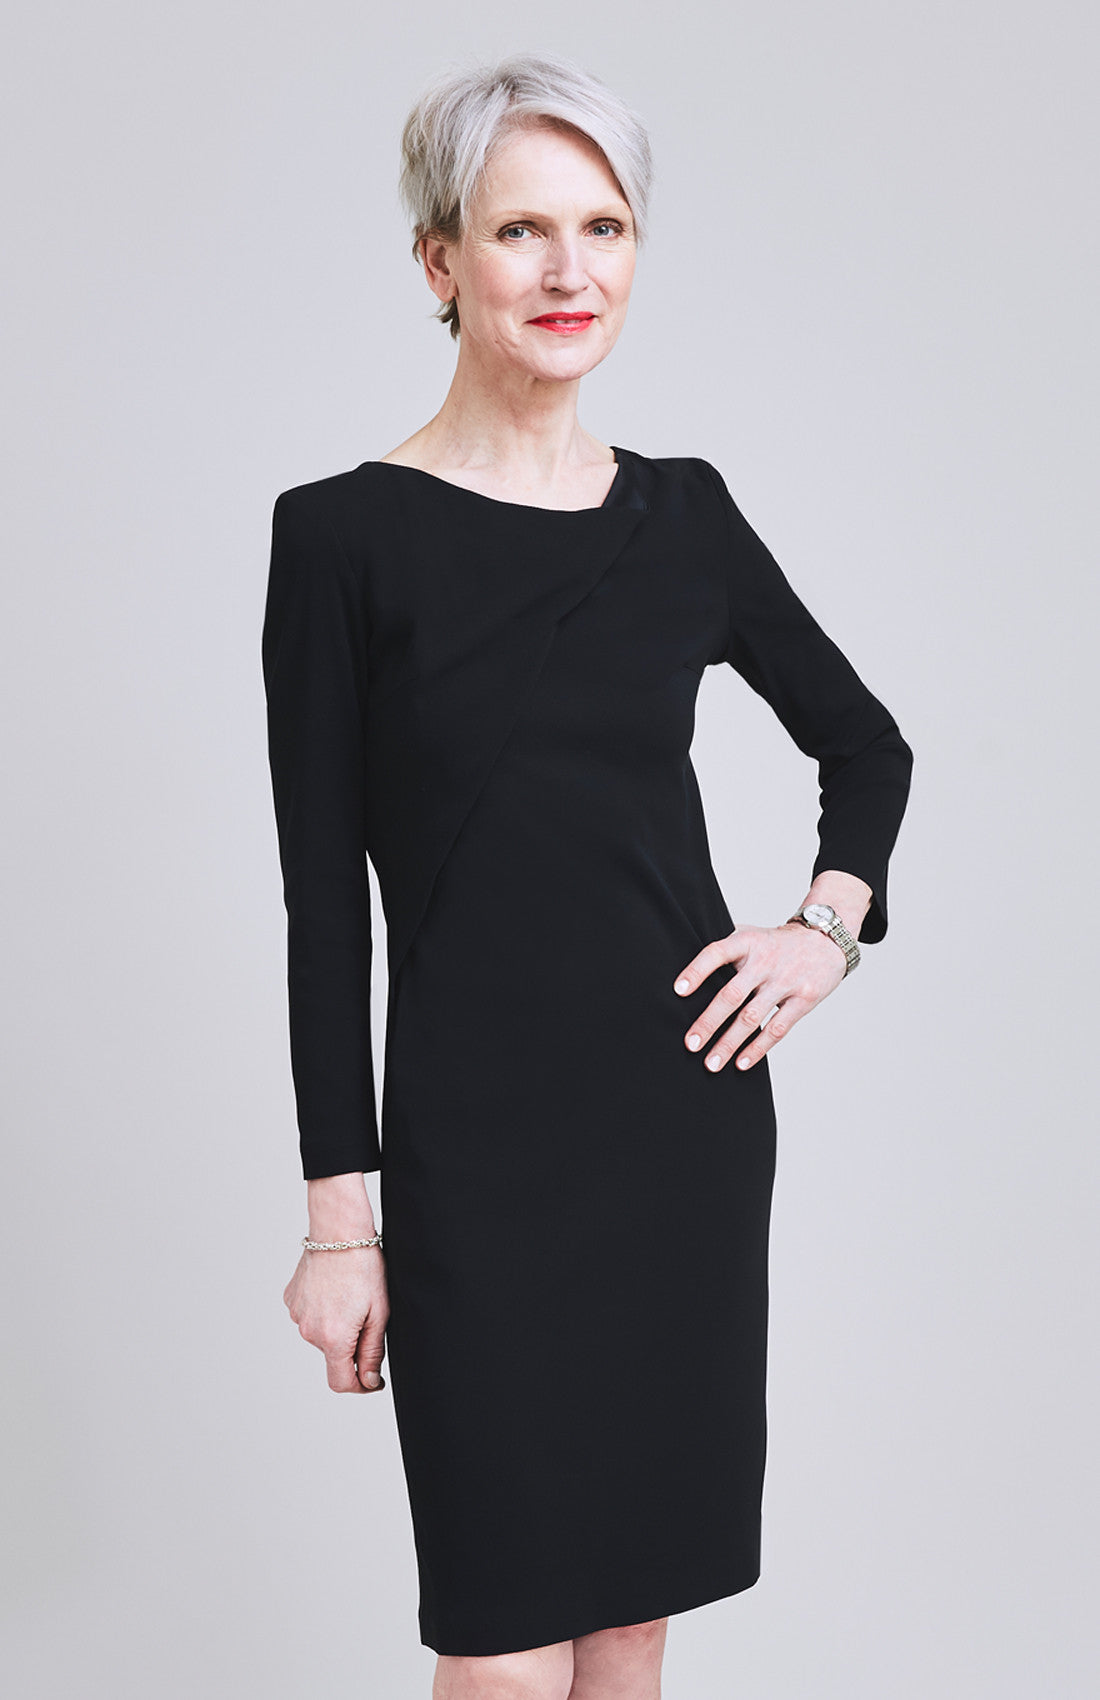 Black office shift dress with long sleeves and twist neckline